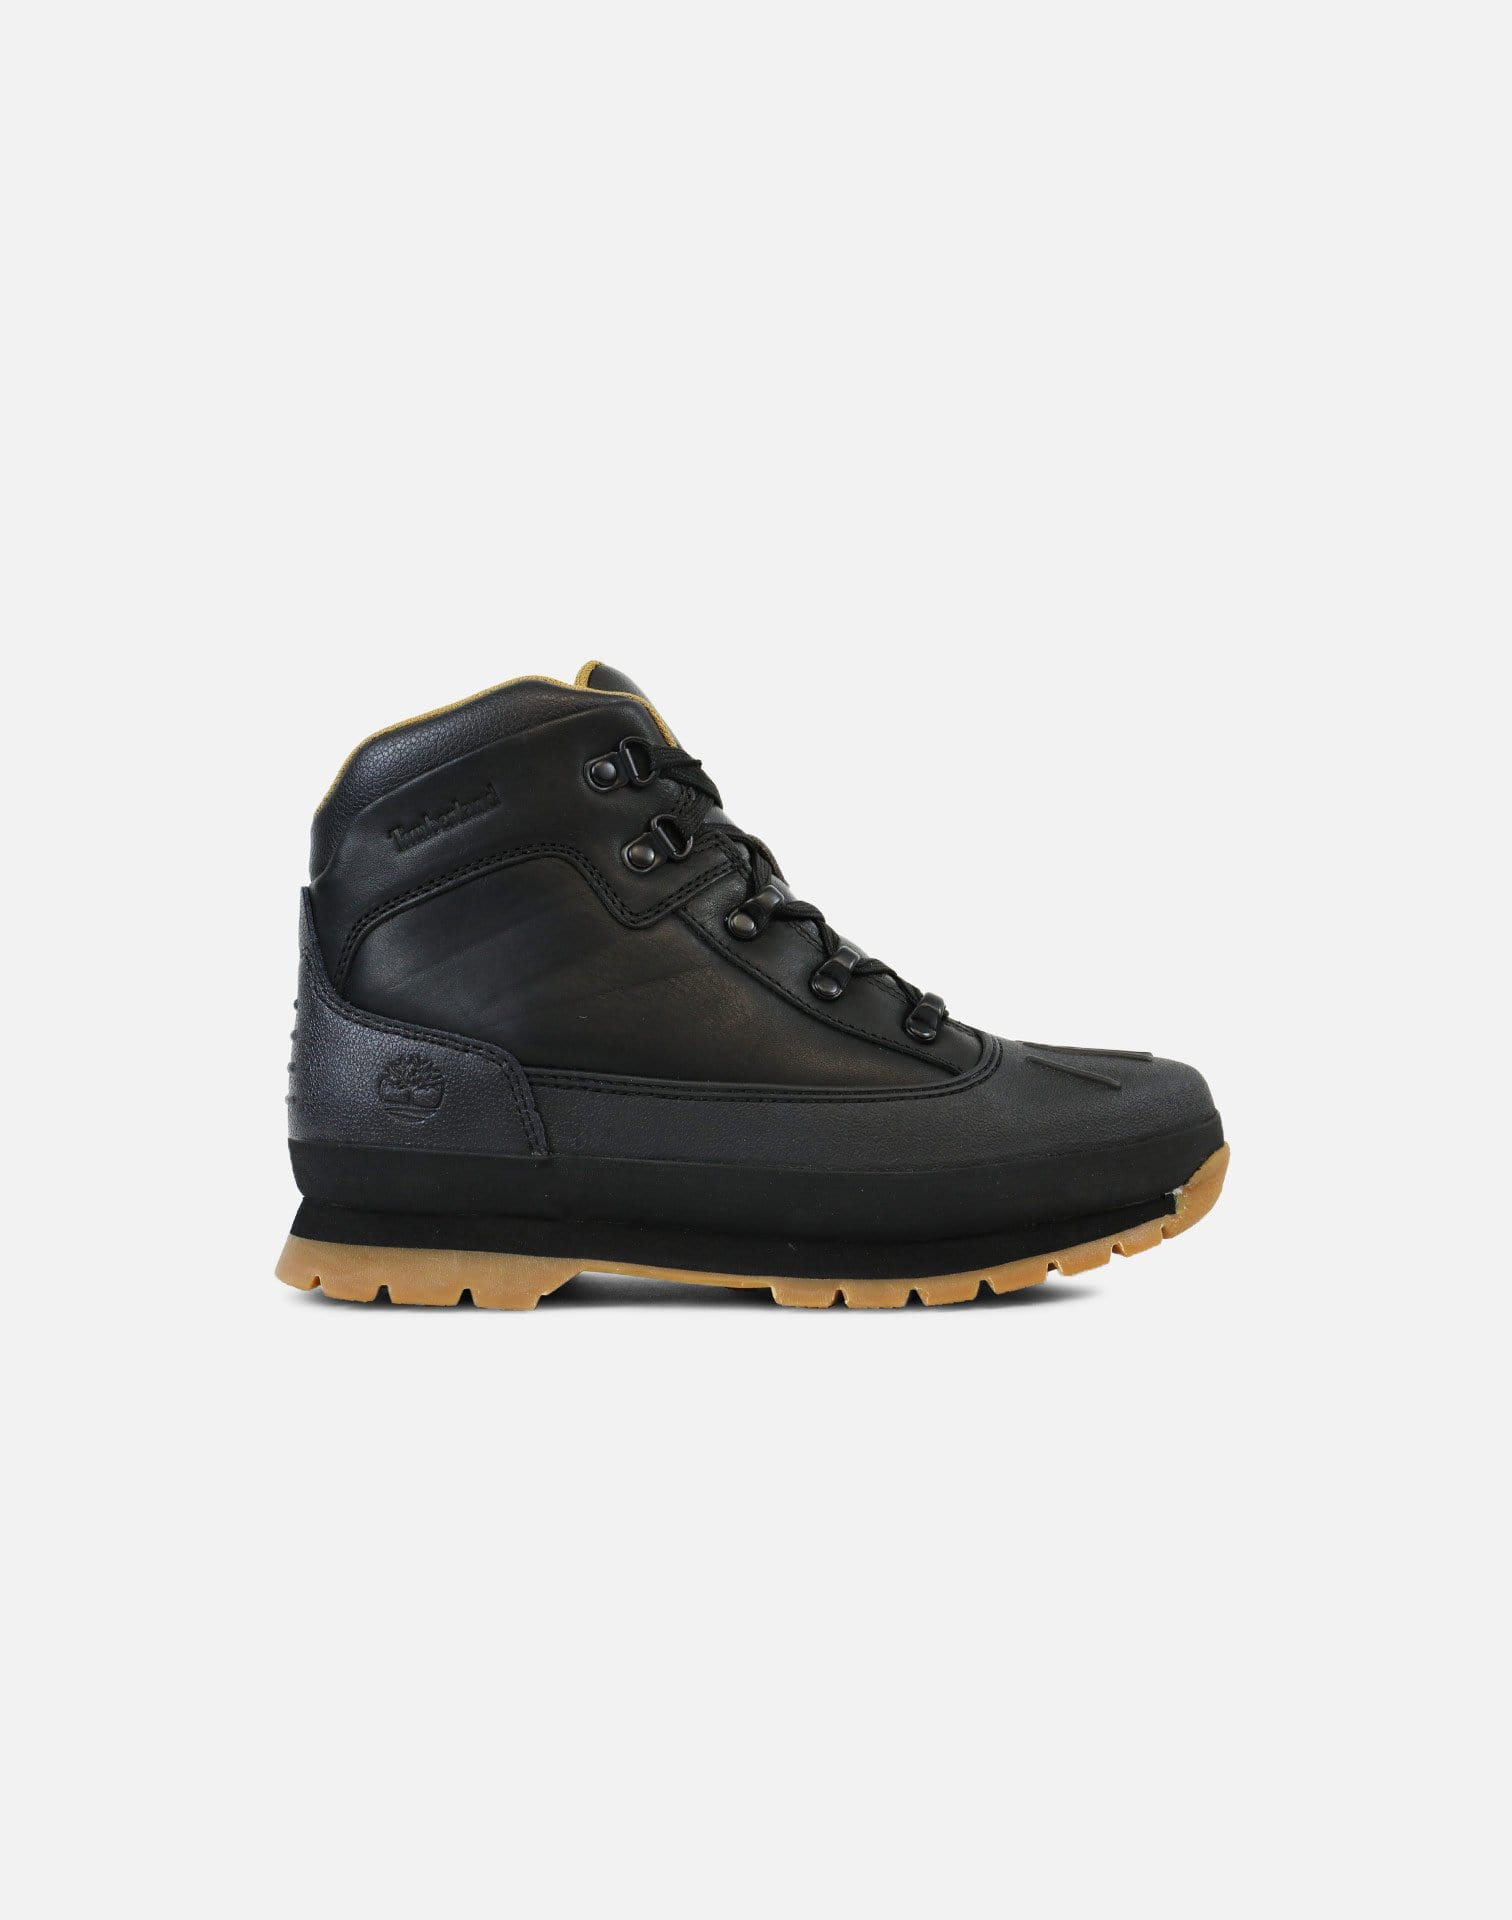 Timberland Shell Toe Euro Hiker Boots Grade-School (Black/Full Grain)